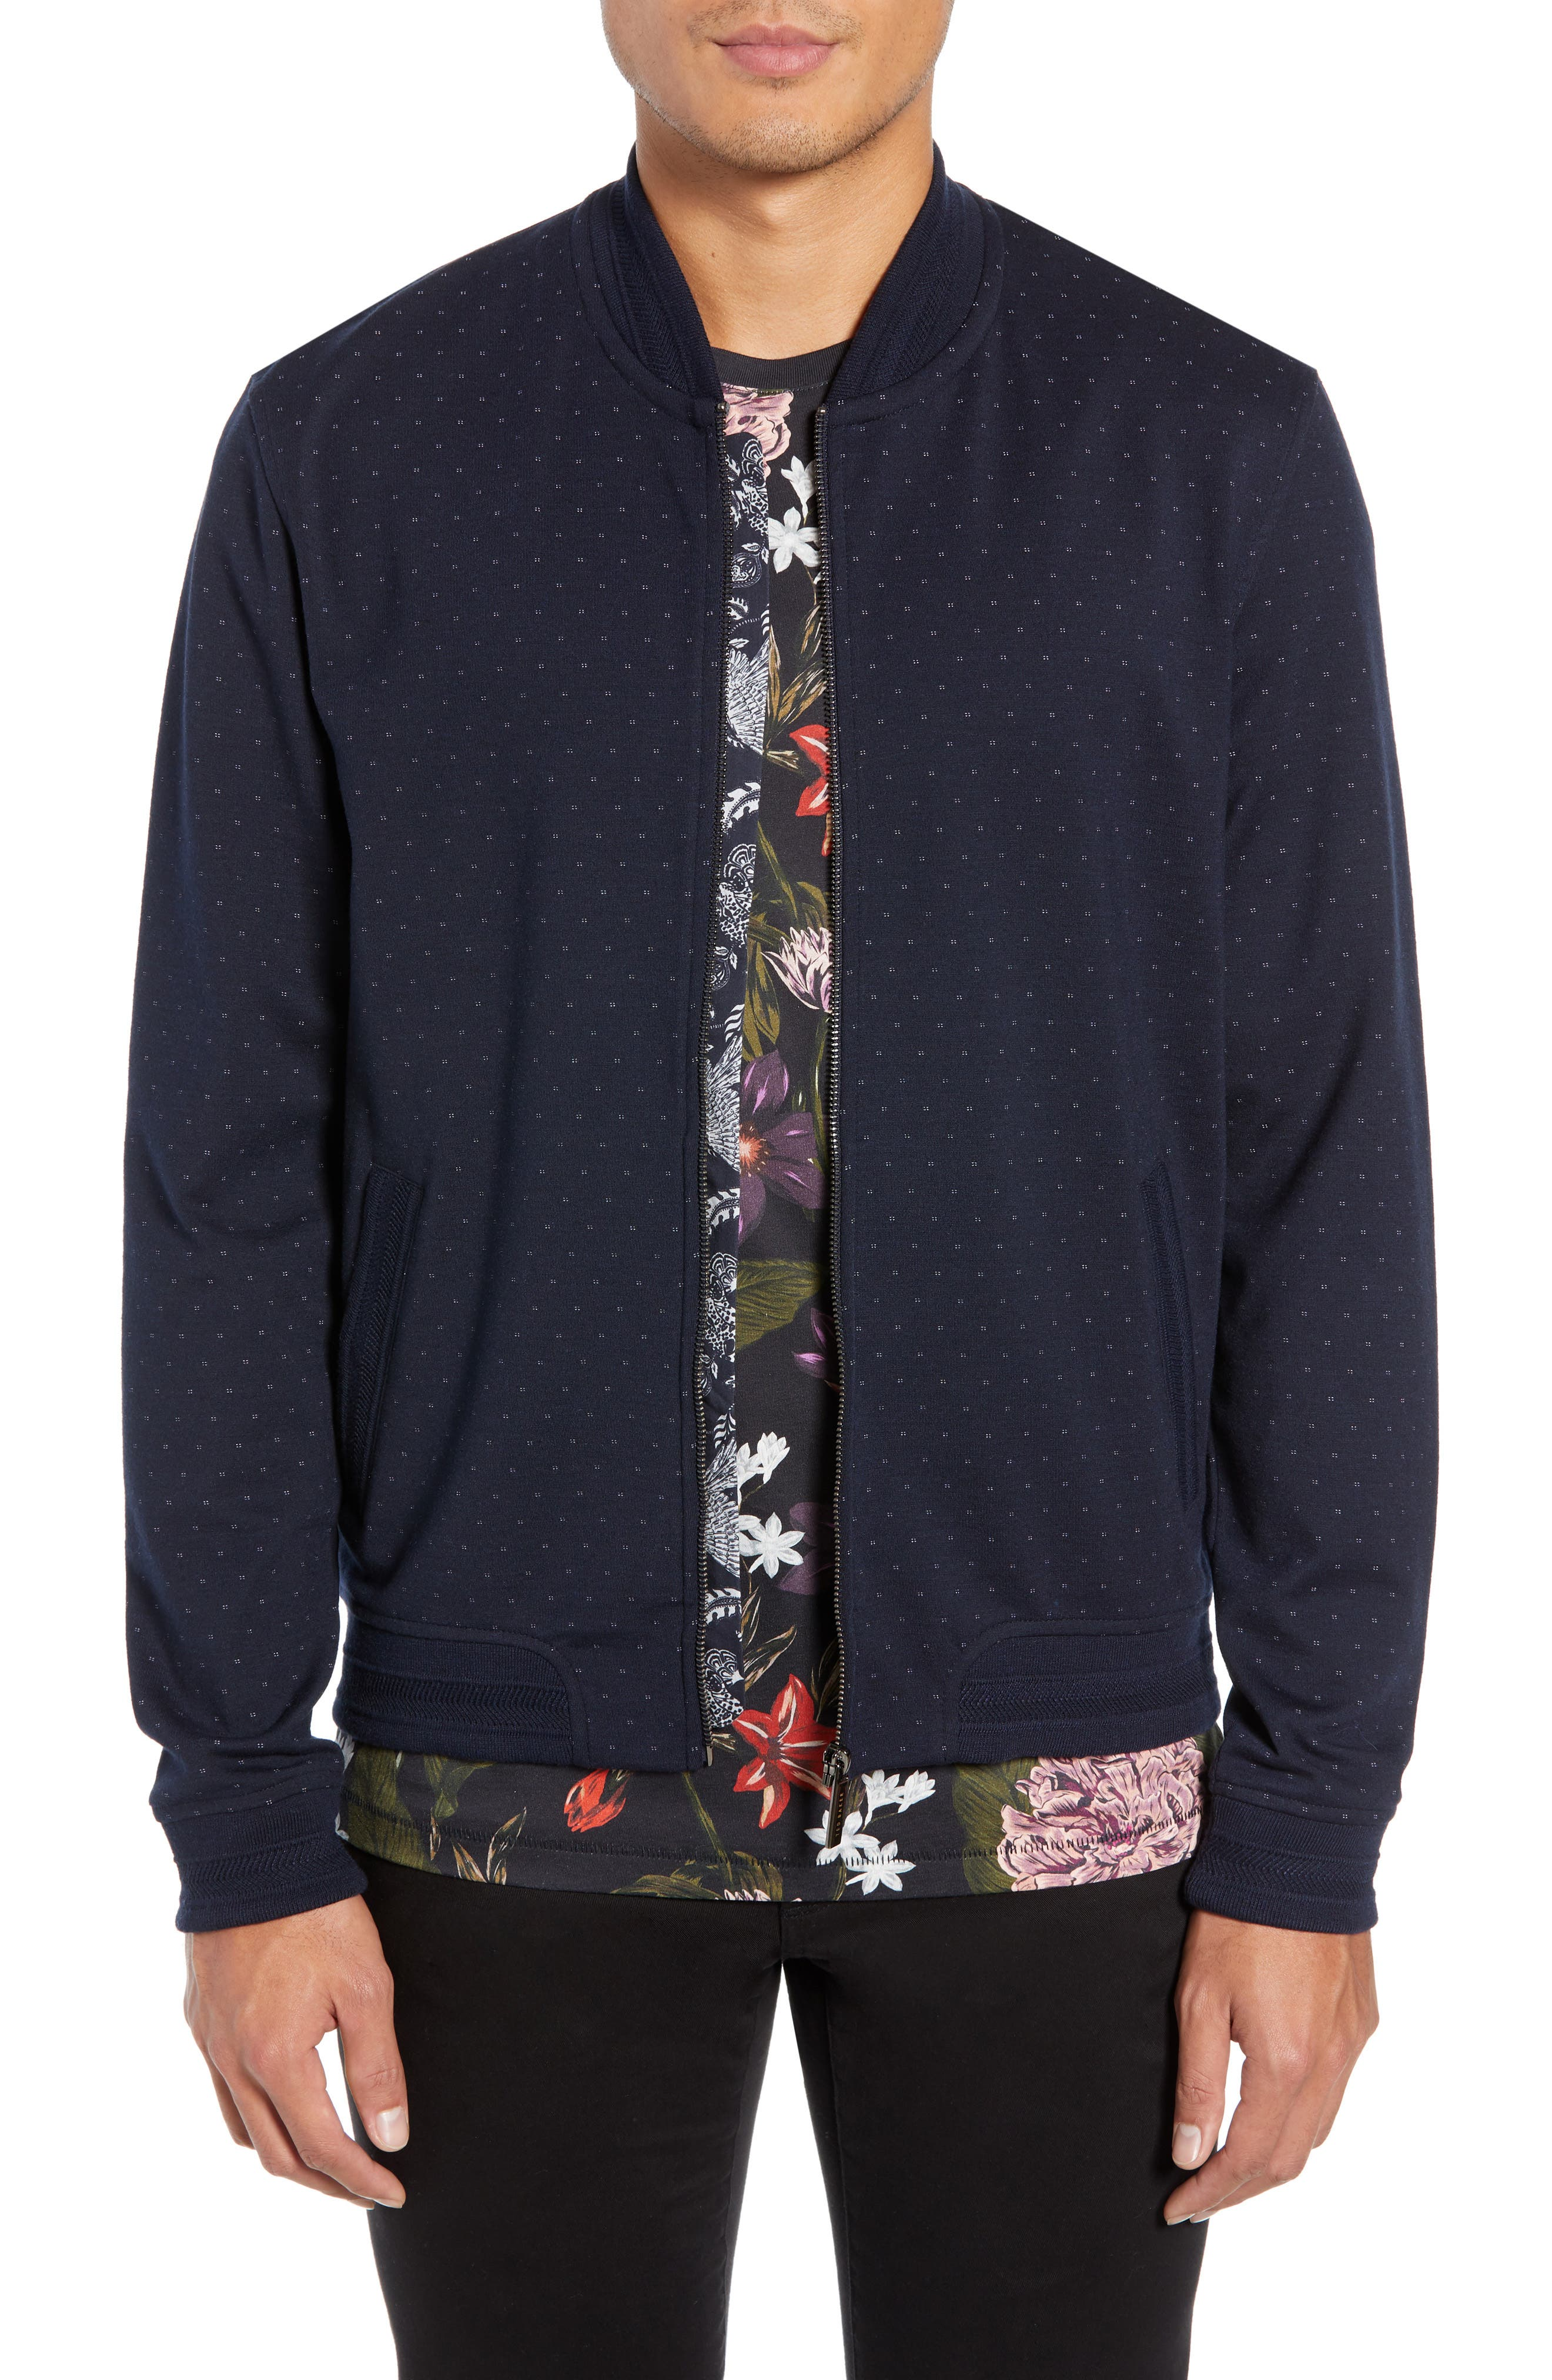 Ruubes Slim Fit Bird's Eye Knit Bomber Jacket,                         Main,                         color, NAVY